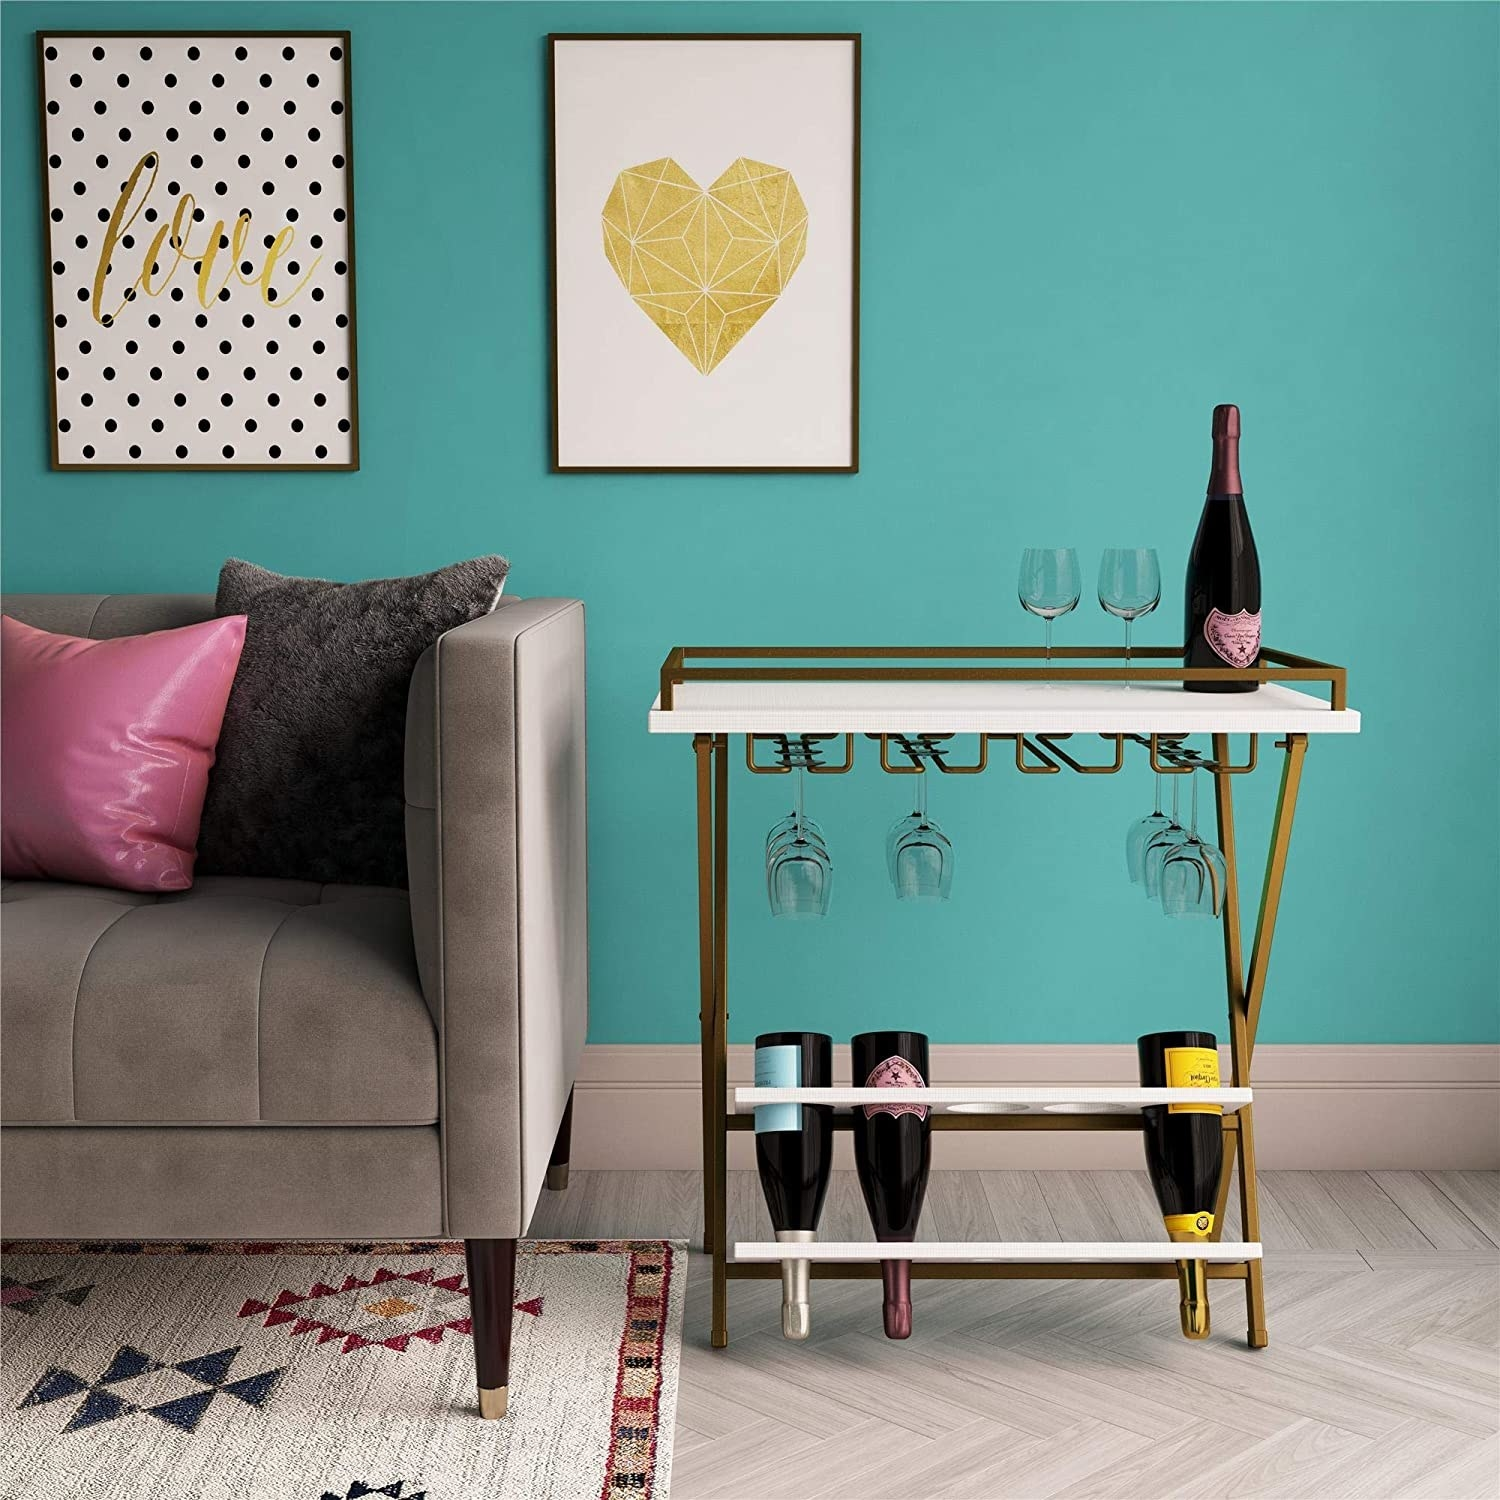 A gold bar cart with a white top and gold hinges at the bottom to hold wine glasses